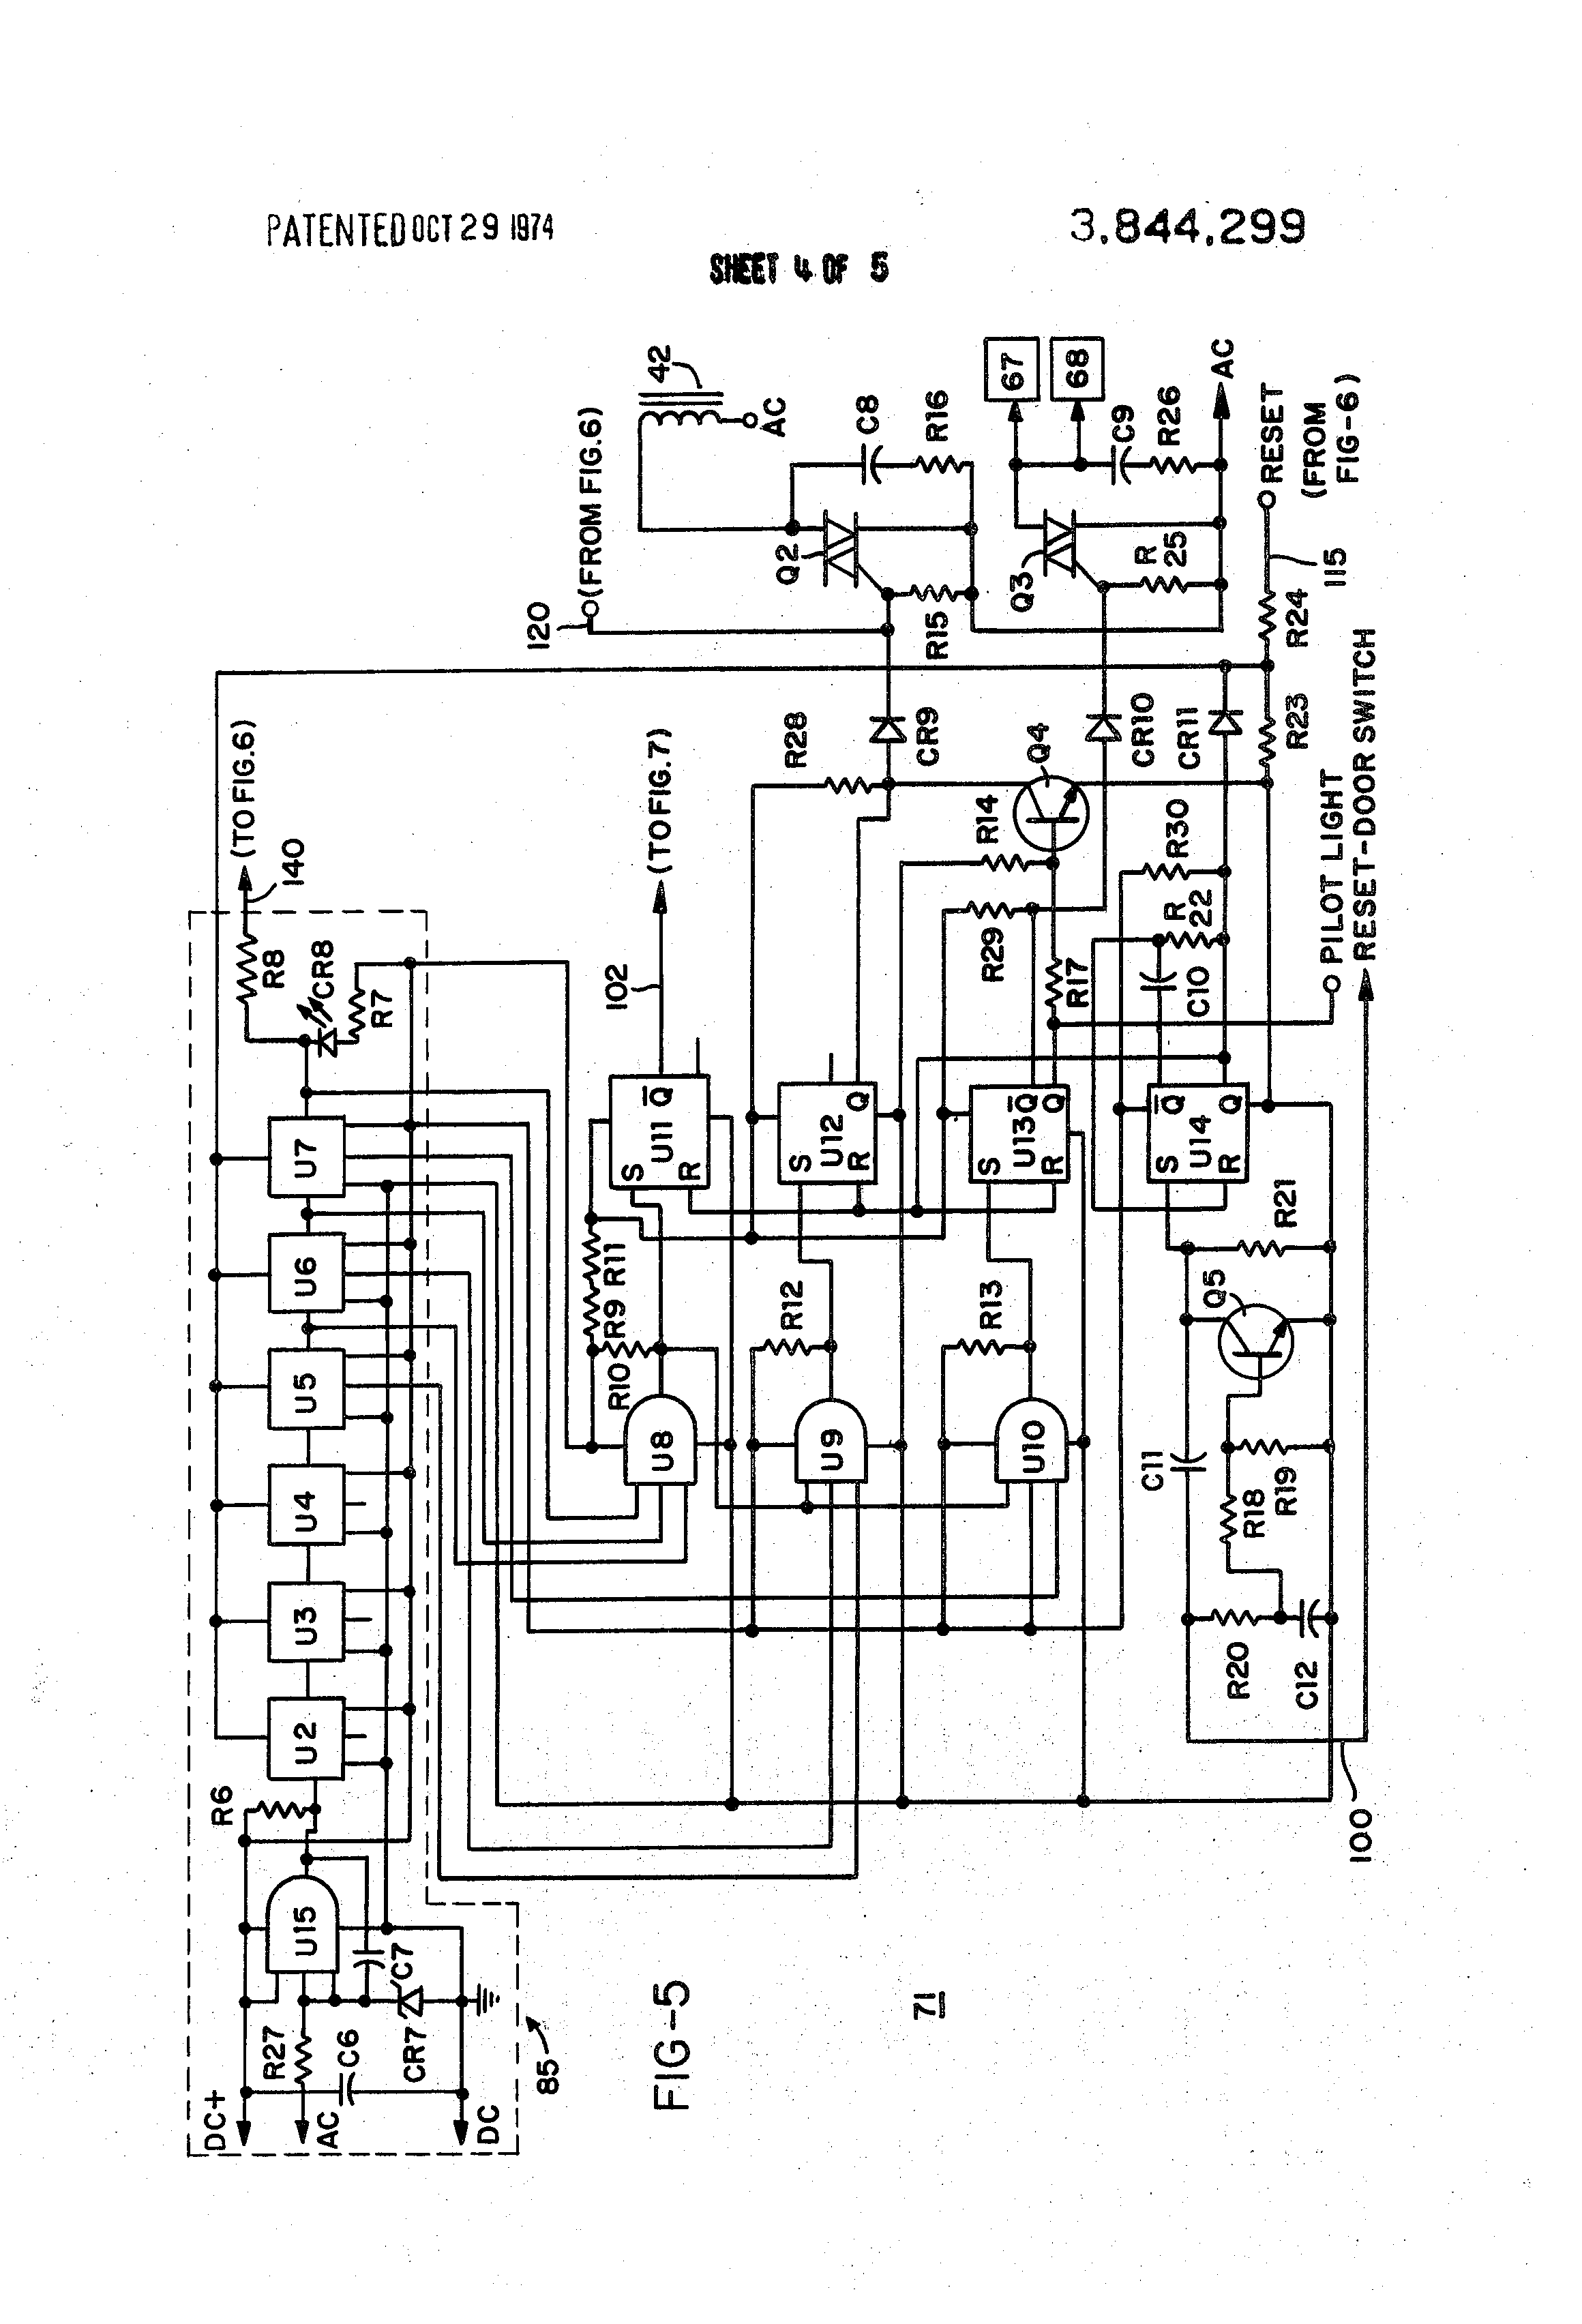 hobart am14 dishwasher wiring diagram hobart dishwasher